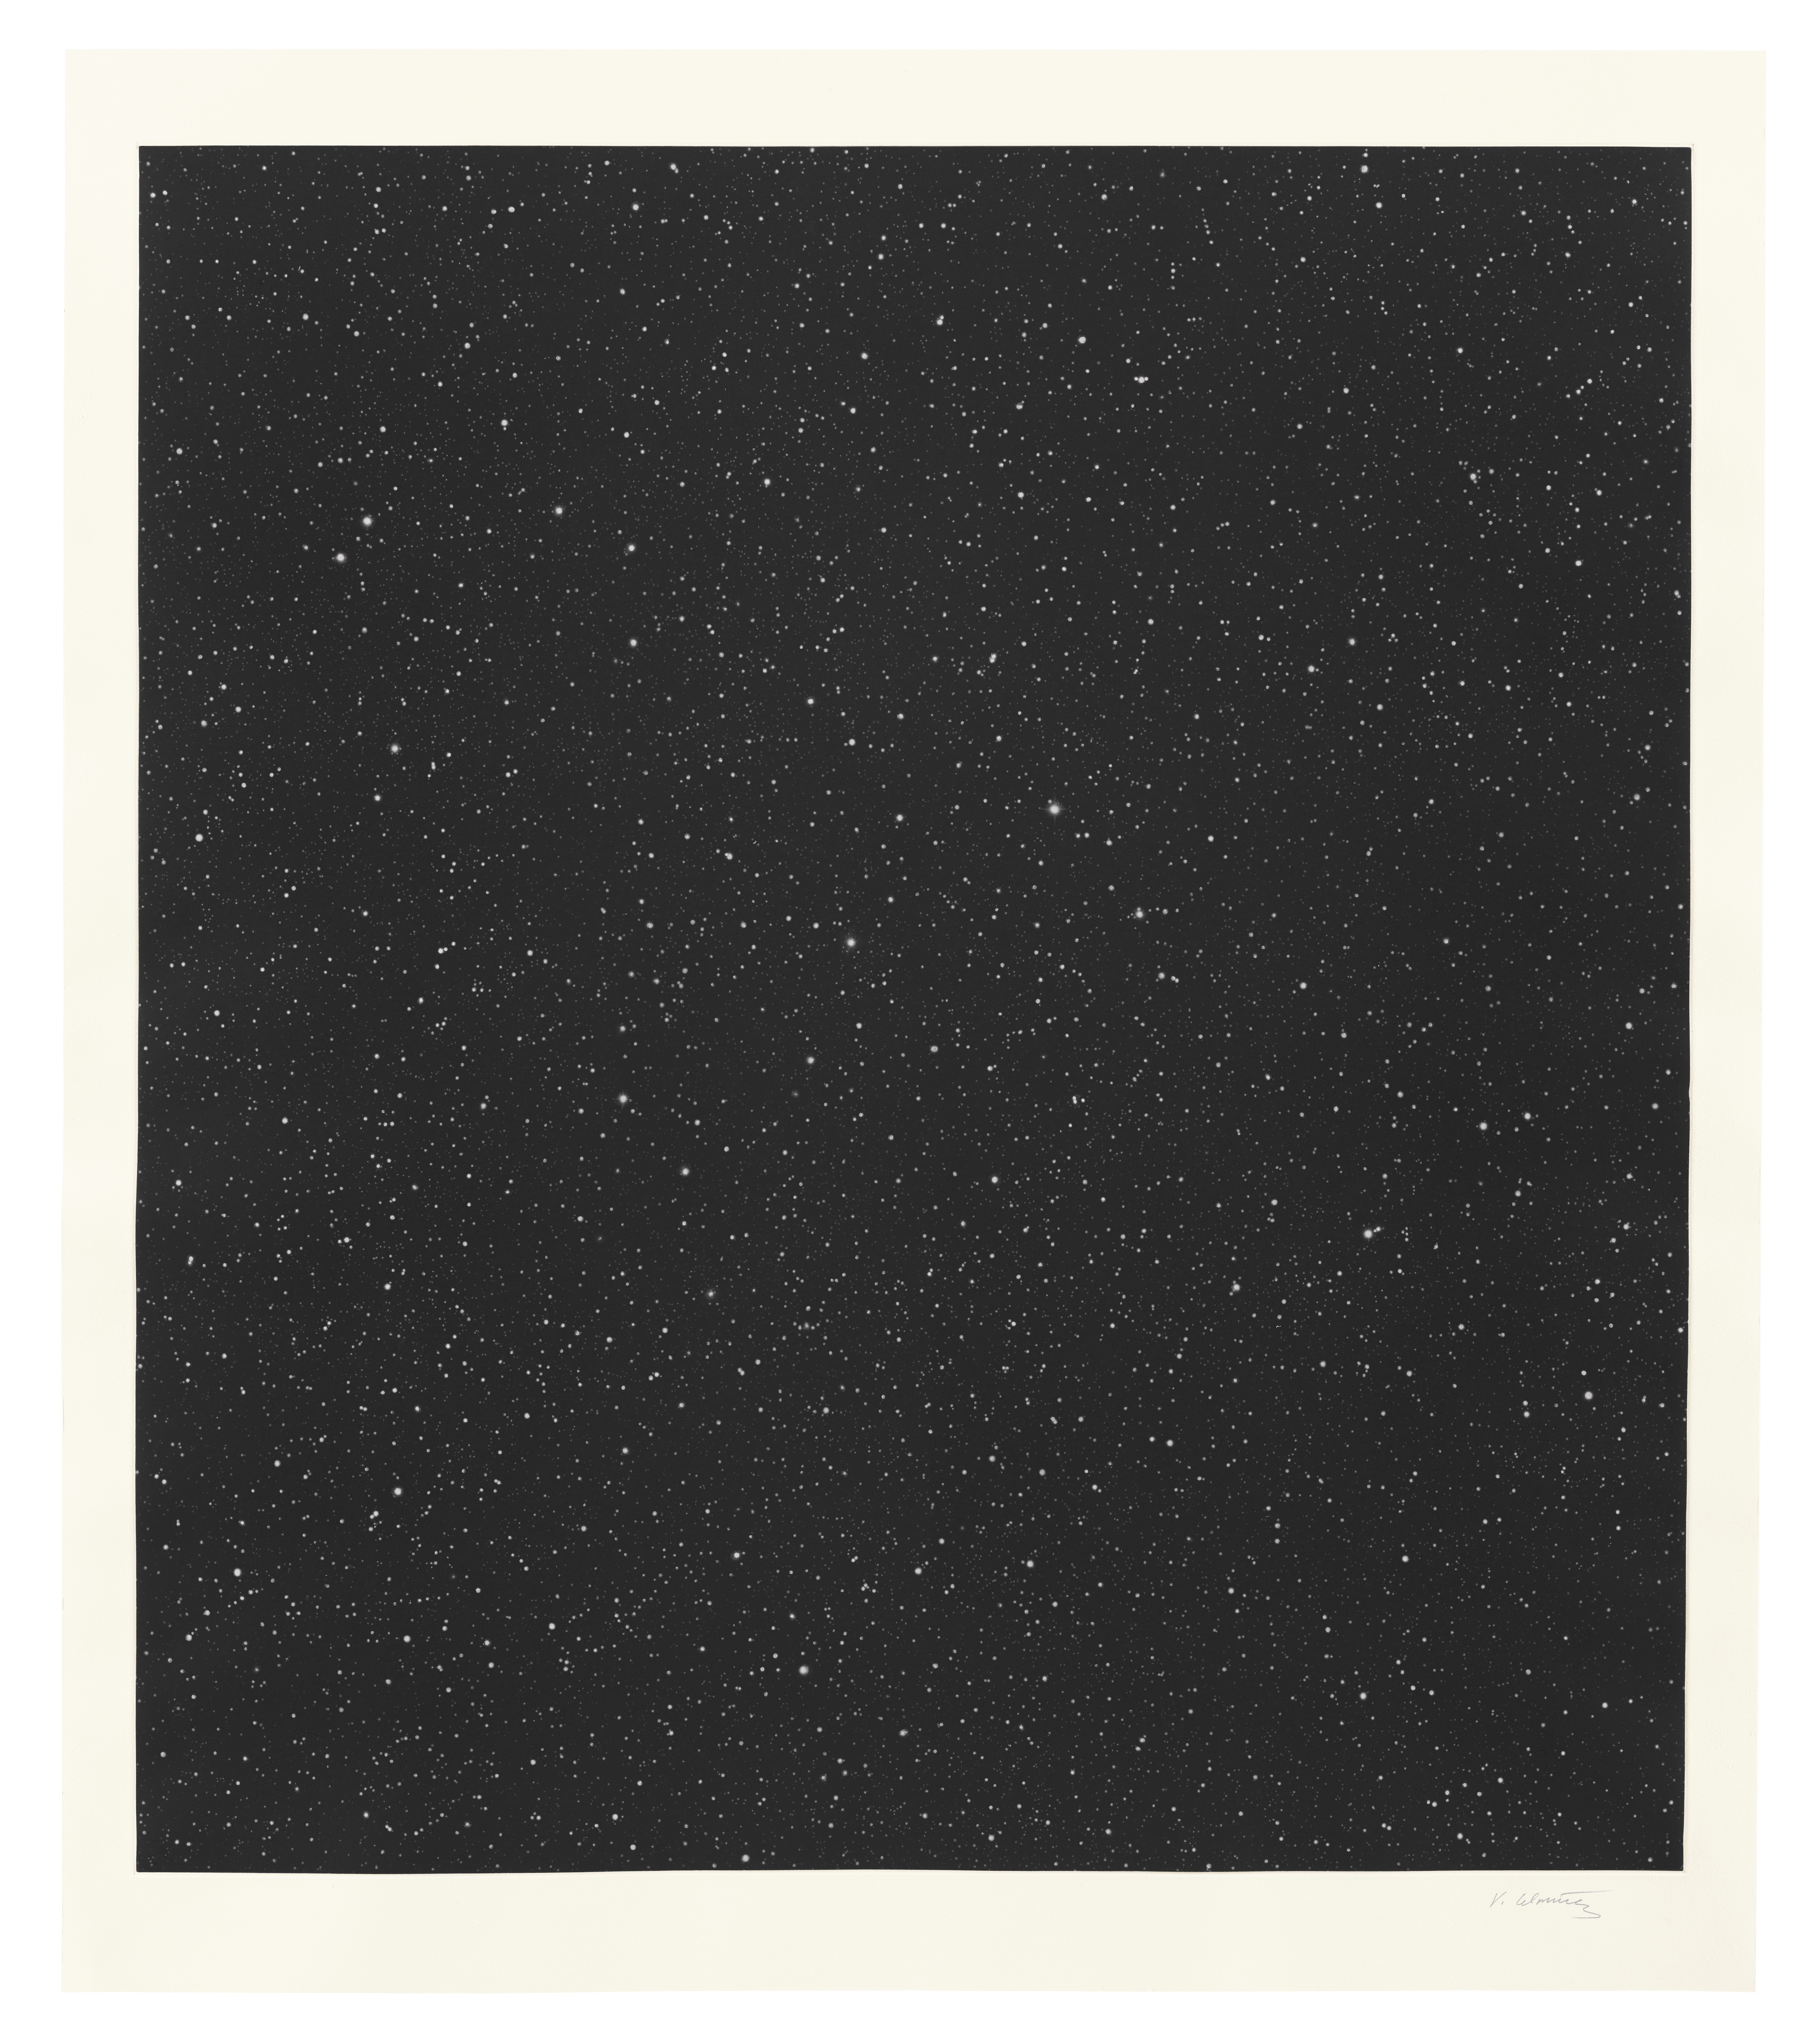 Vija Celmins Untitled Large Night Sky